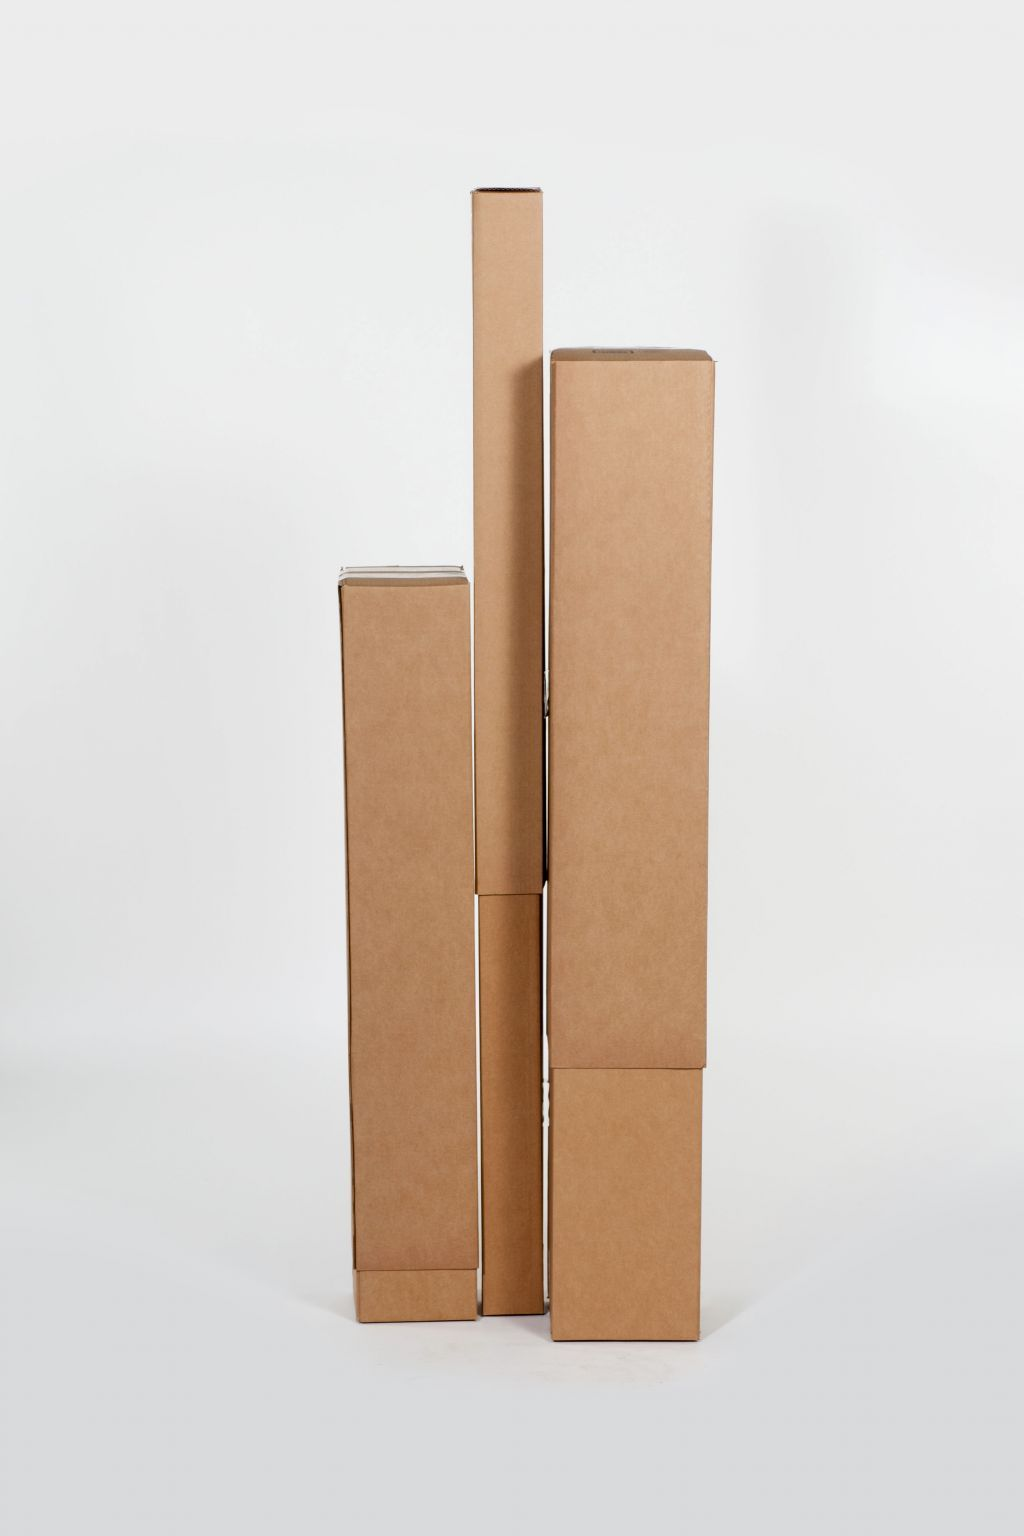 6x6x48 Telescoping Inner Shipping Boxes 25 Count